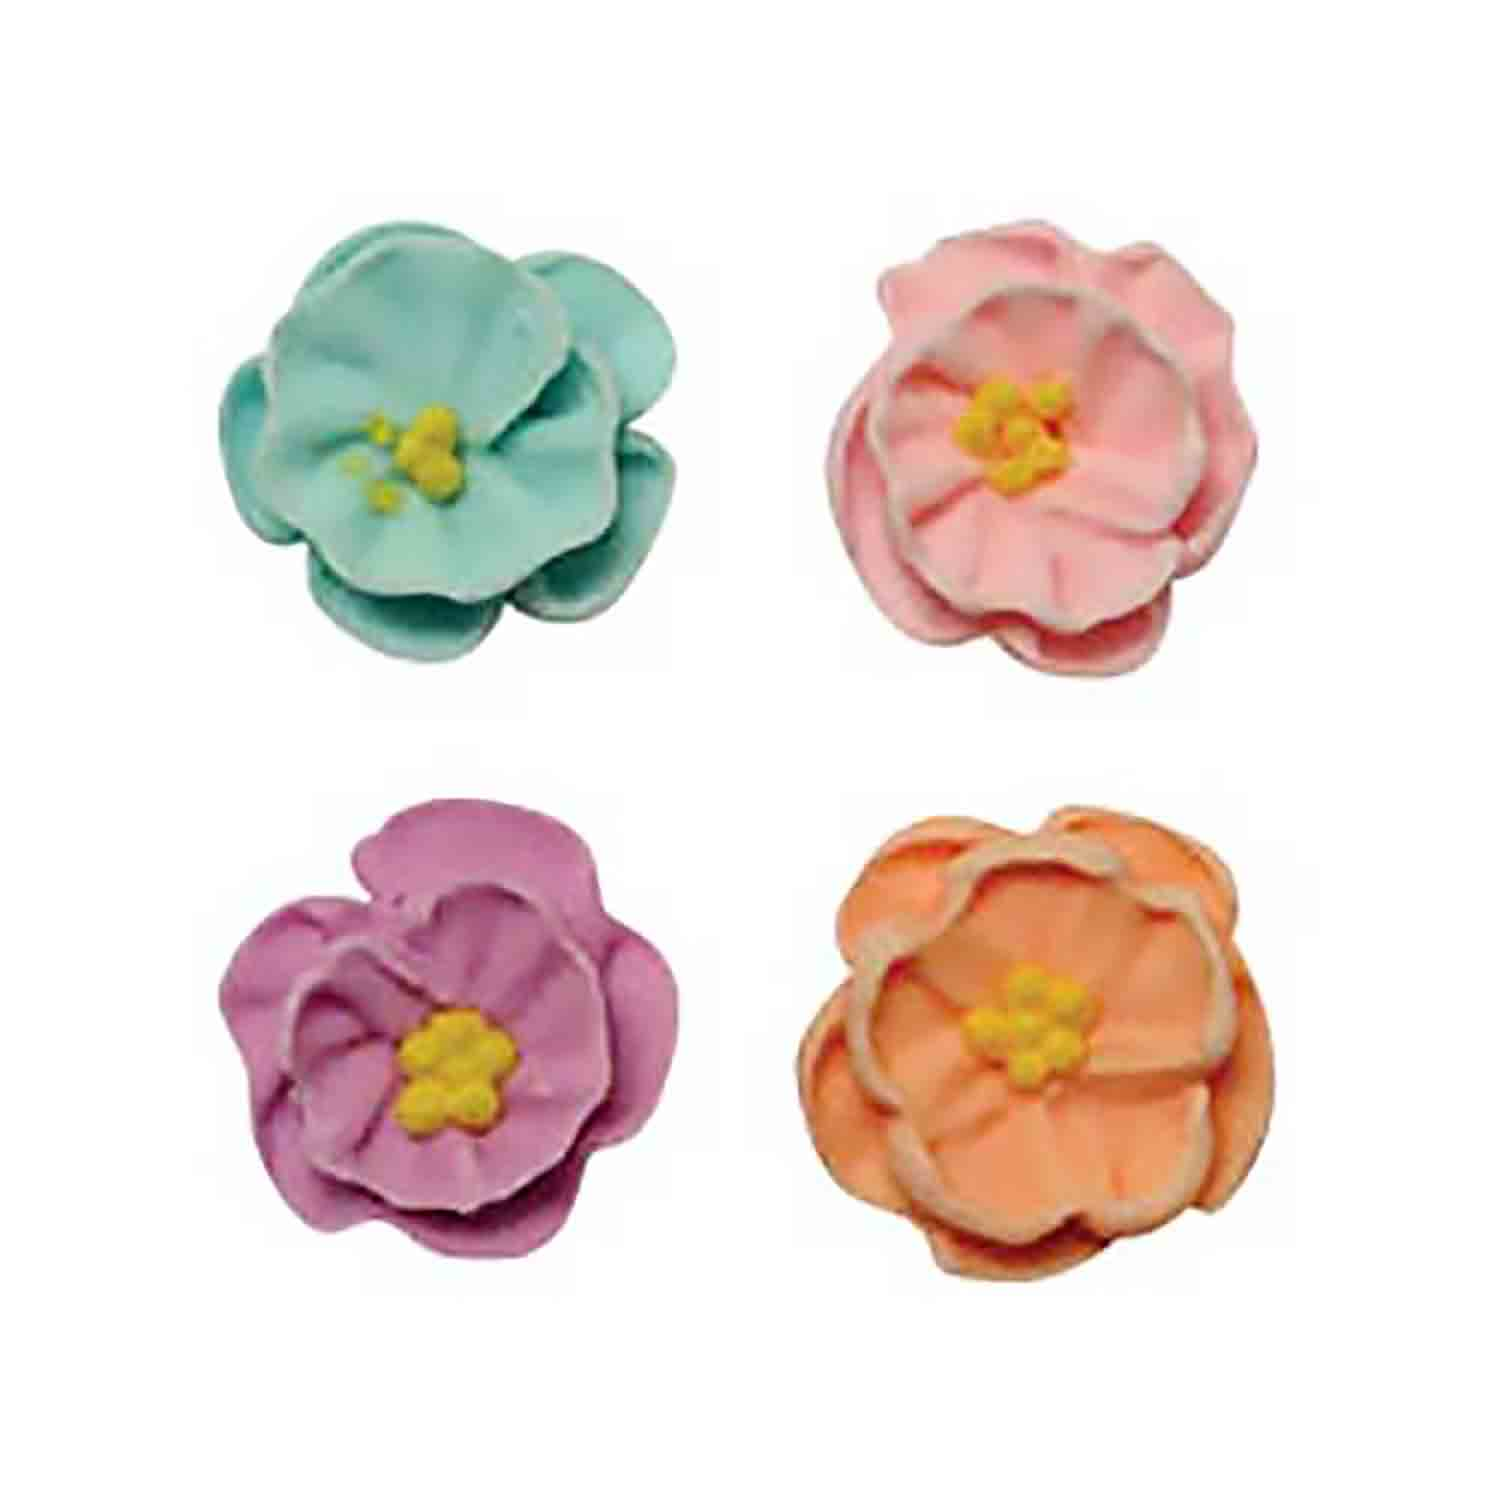 Icing Layons - Dainty Bess Mini Assortment